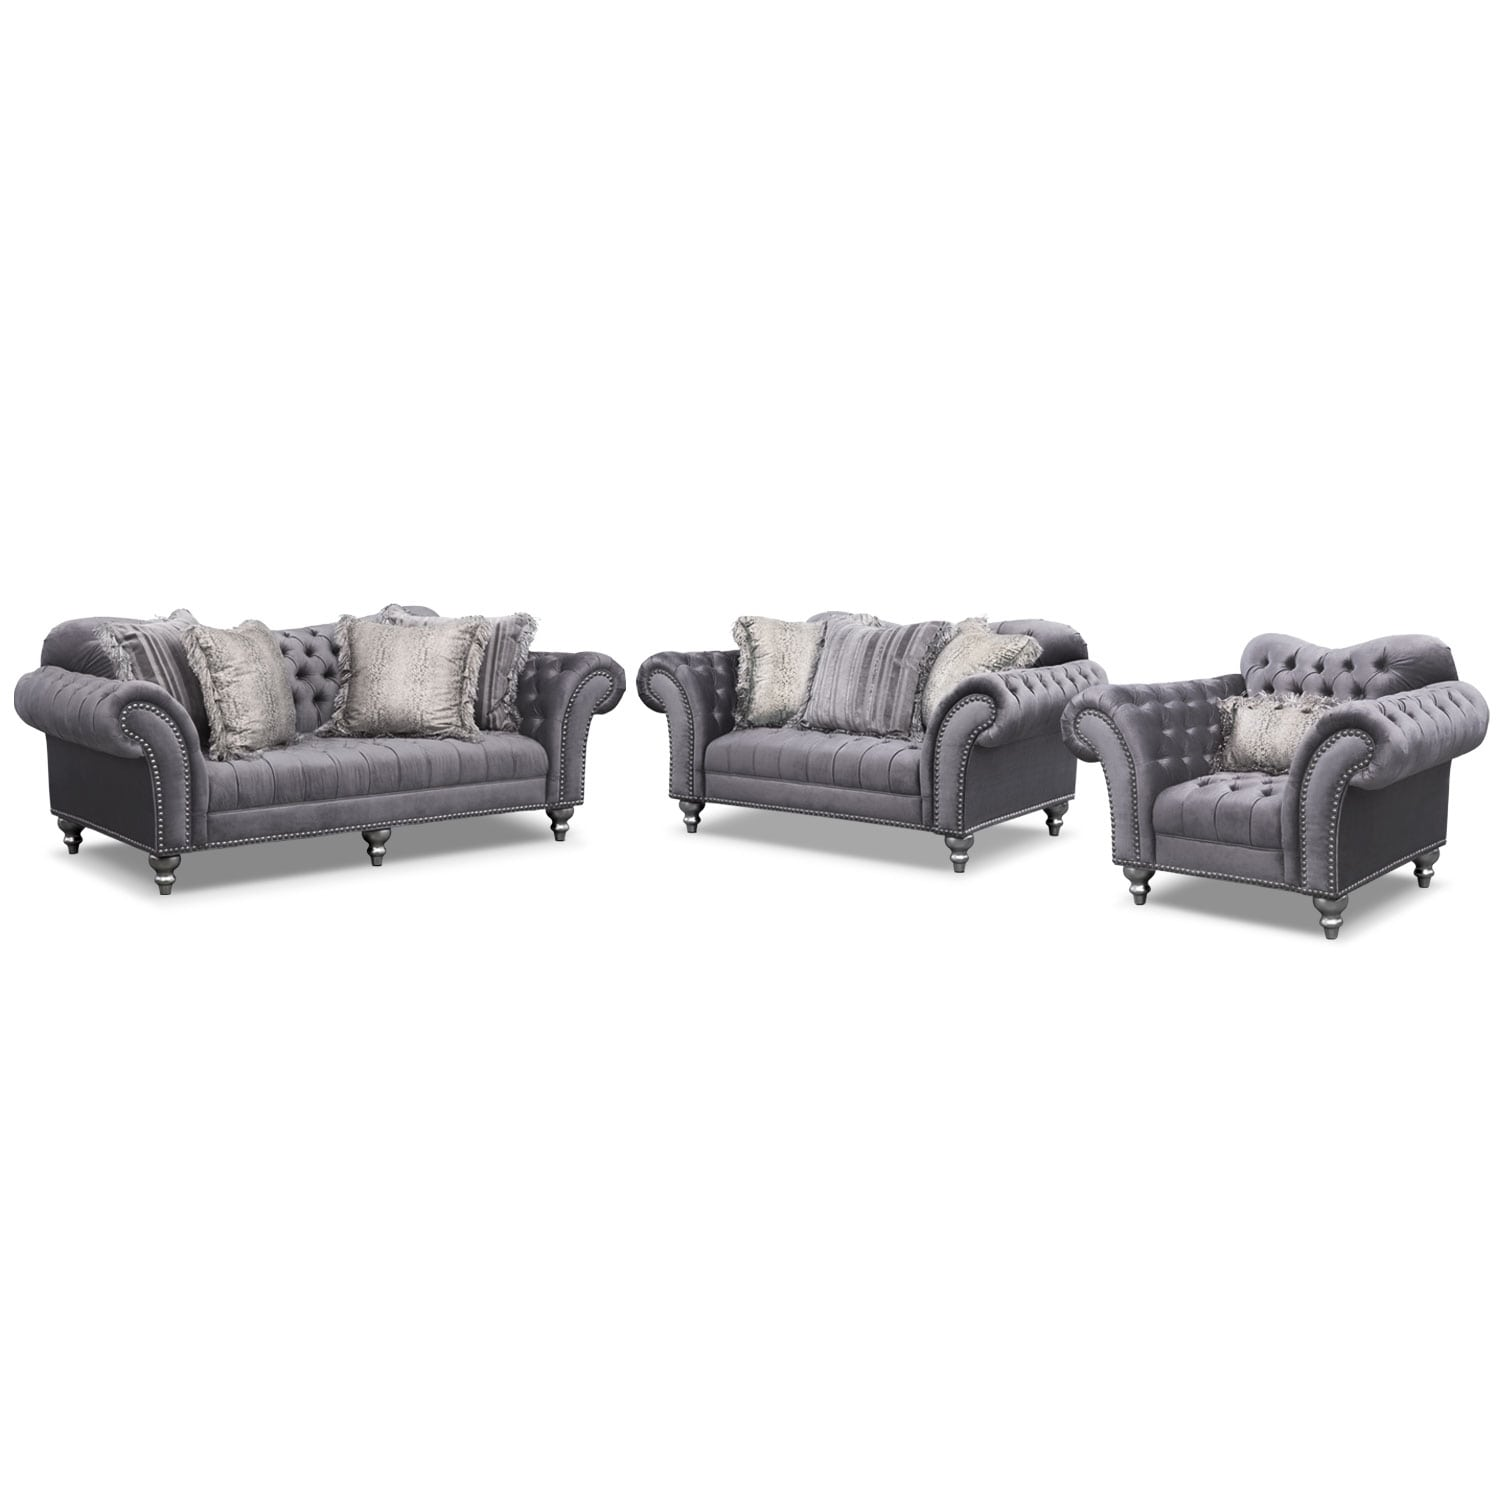 Living Room Furniture - Brittney Sofa, Loveseat and Chair Set - Gray